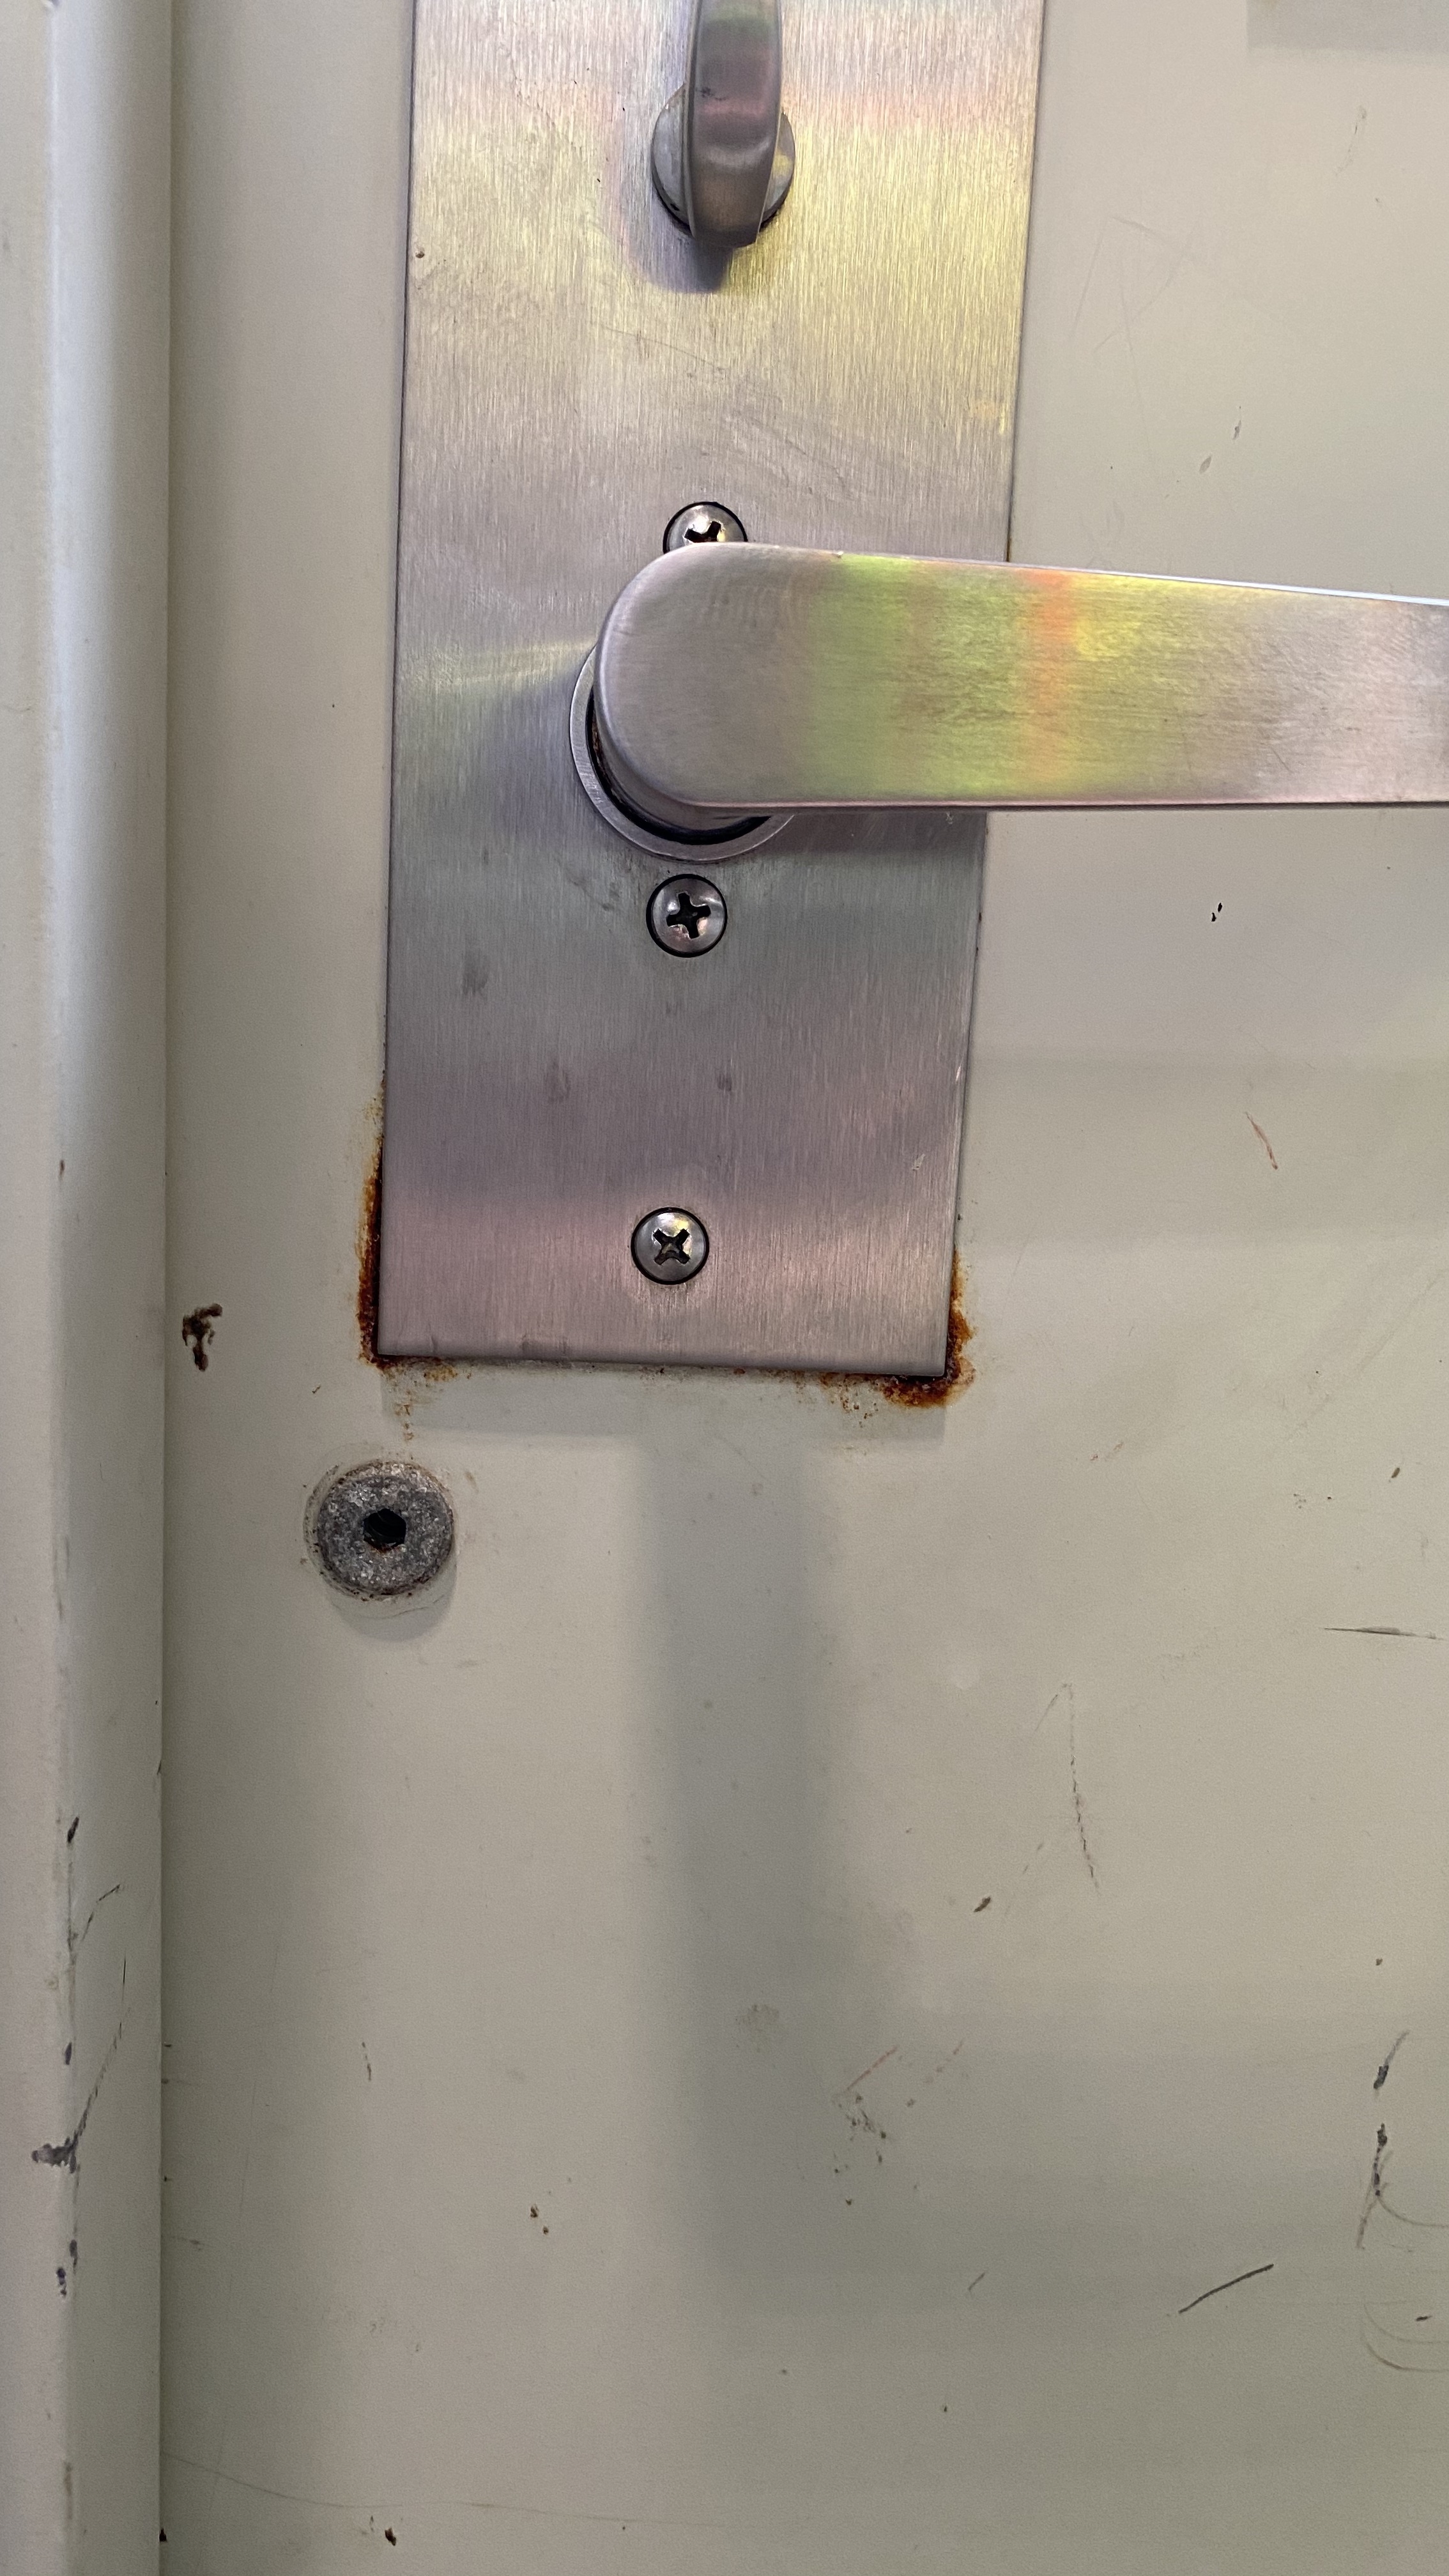 Rust on new door?-dd3b9e63-f061-cf04-7ad1-550ab07614e2.jpg